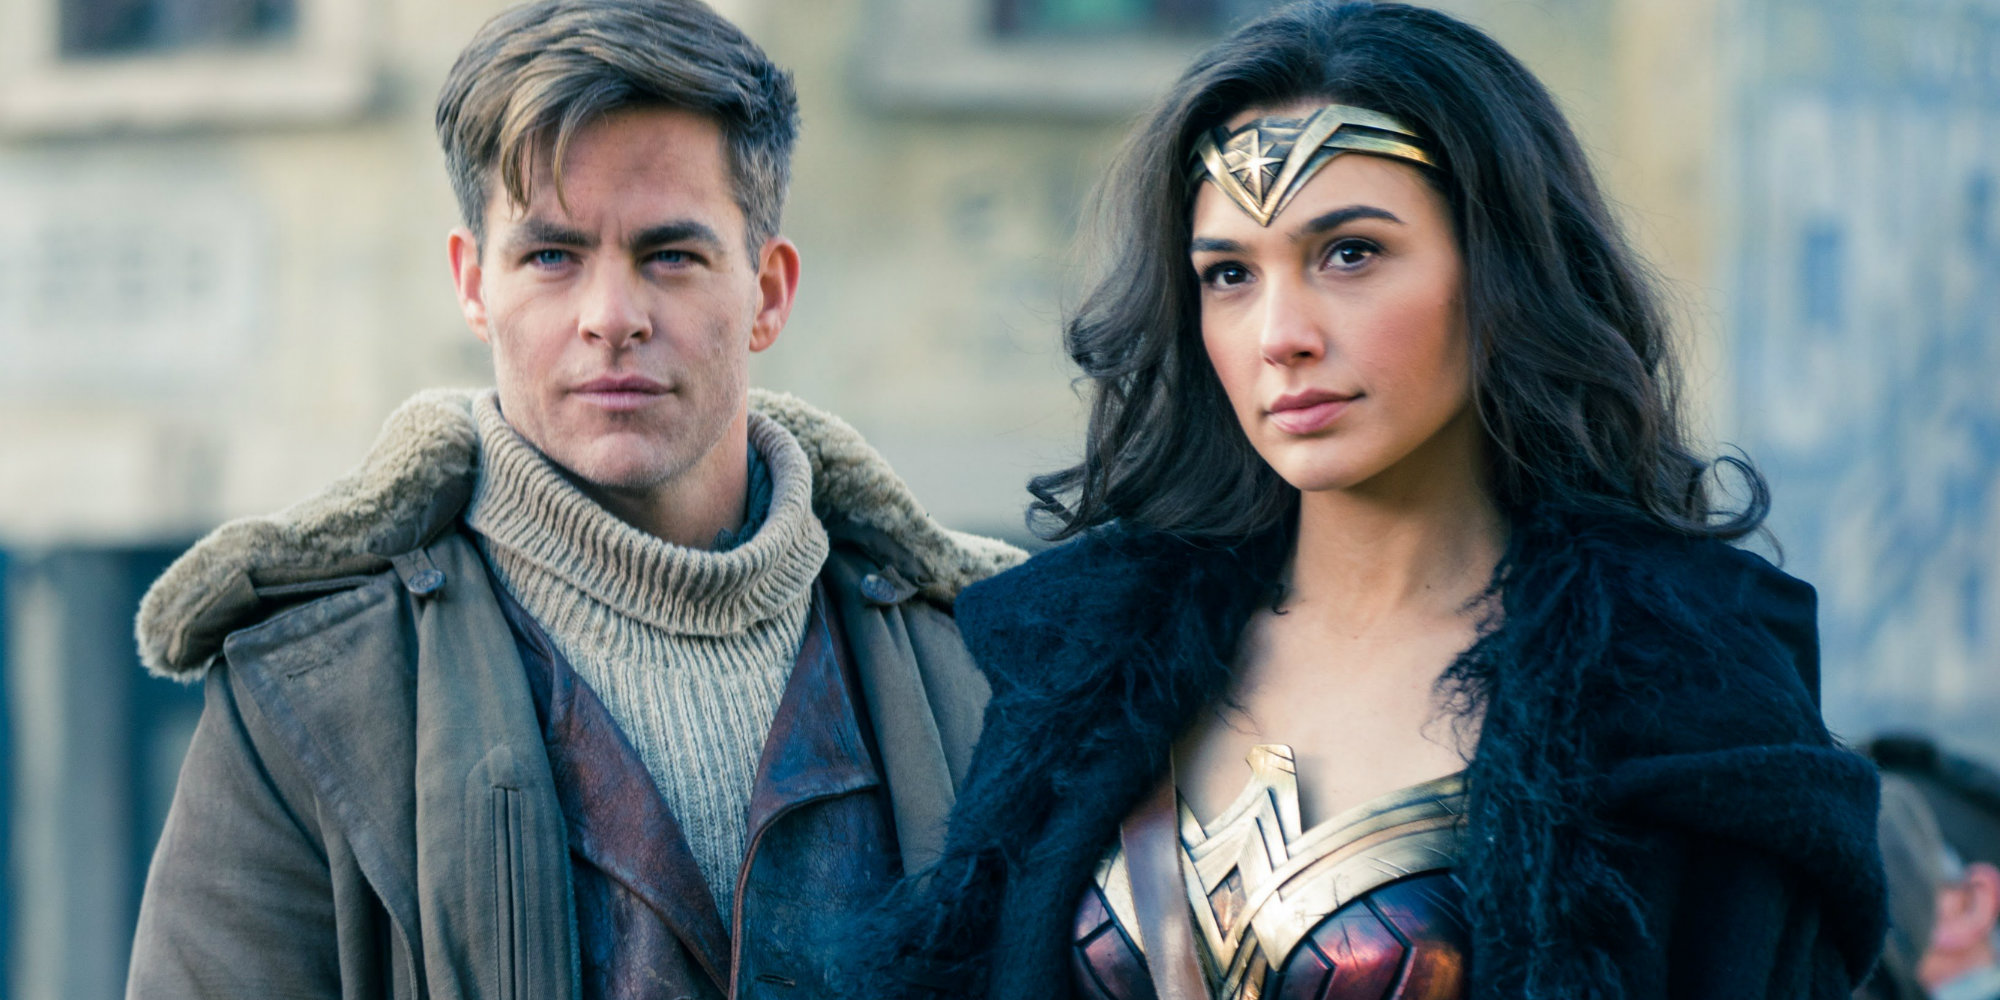 Wonder Woman reinvigorates exhausted superhero conventions